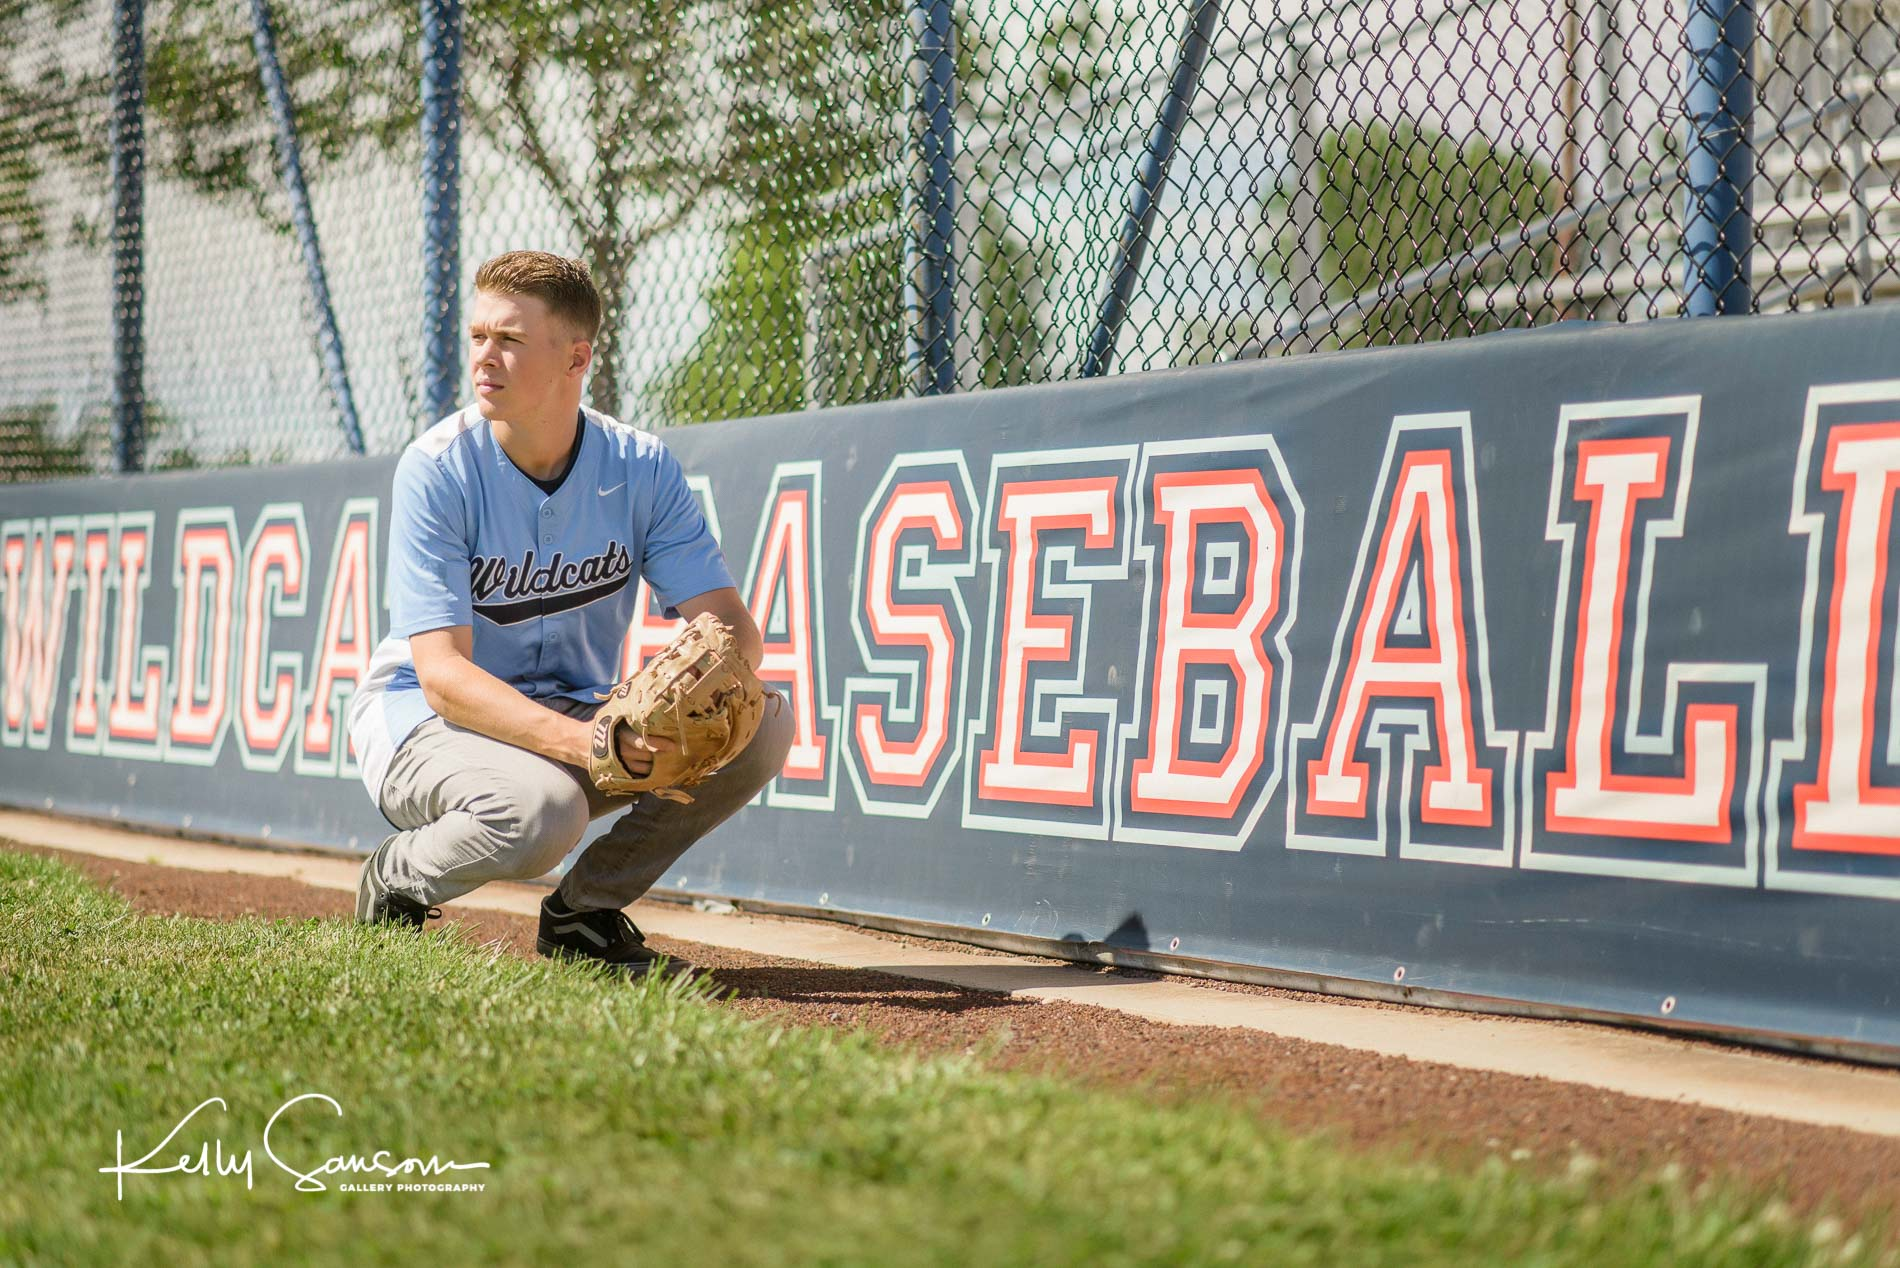 High School senior baseball player kneeling on baseball field for Bountiful Utah photography.